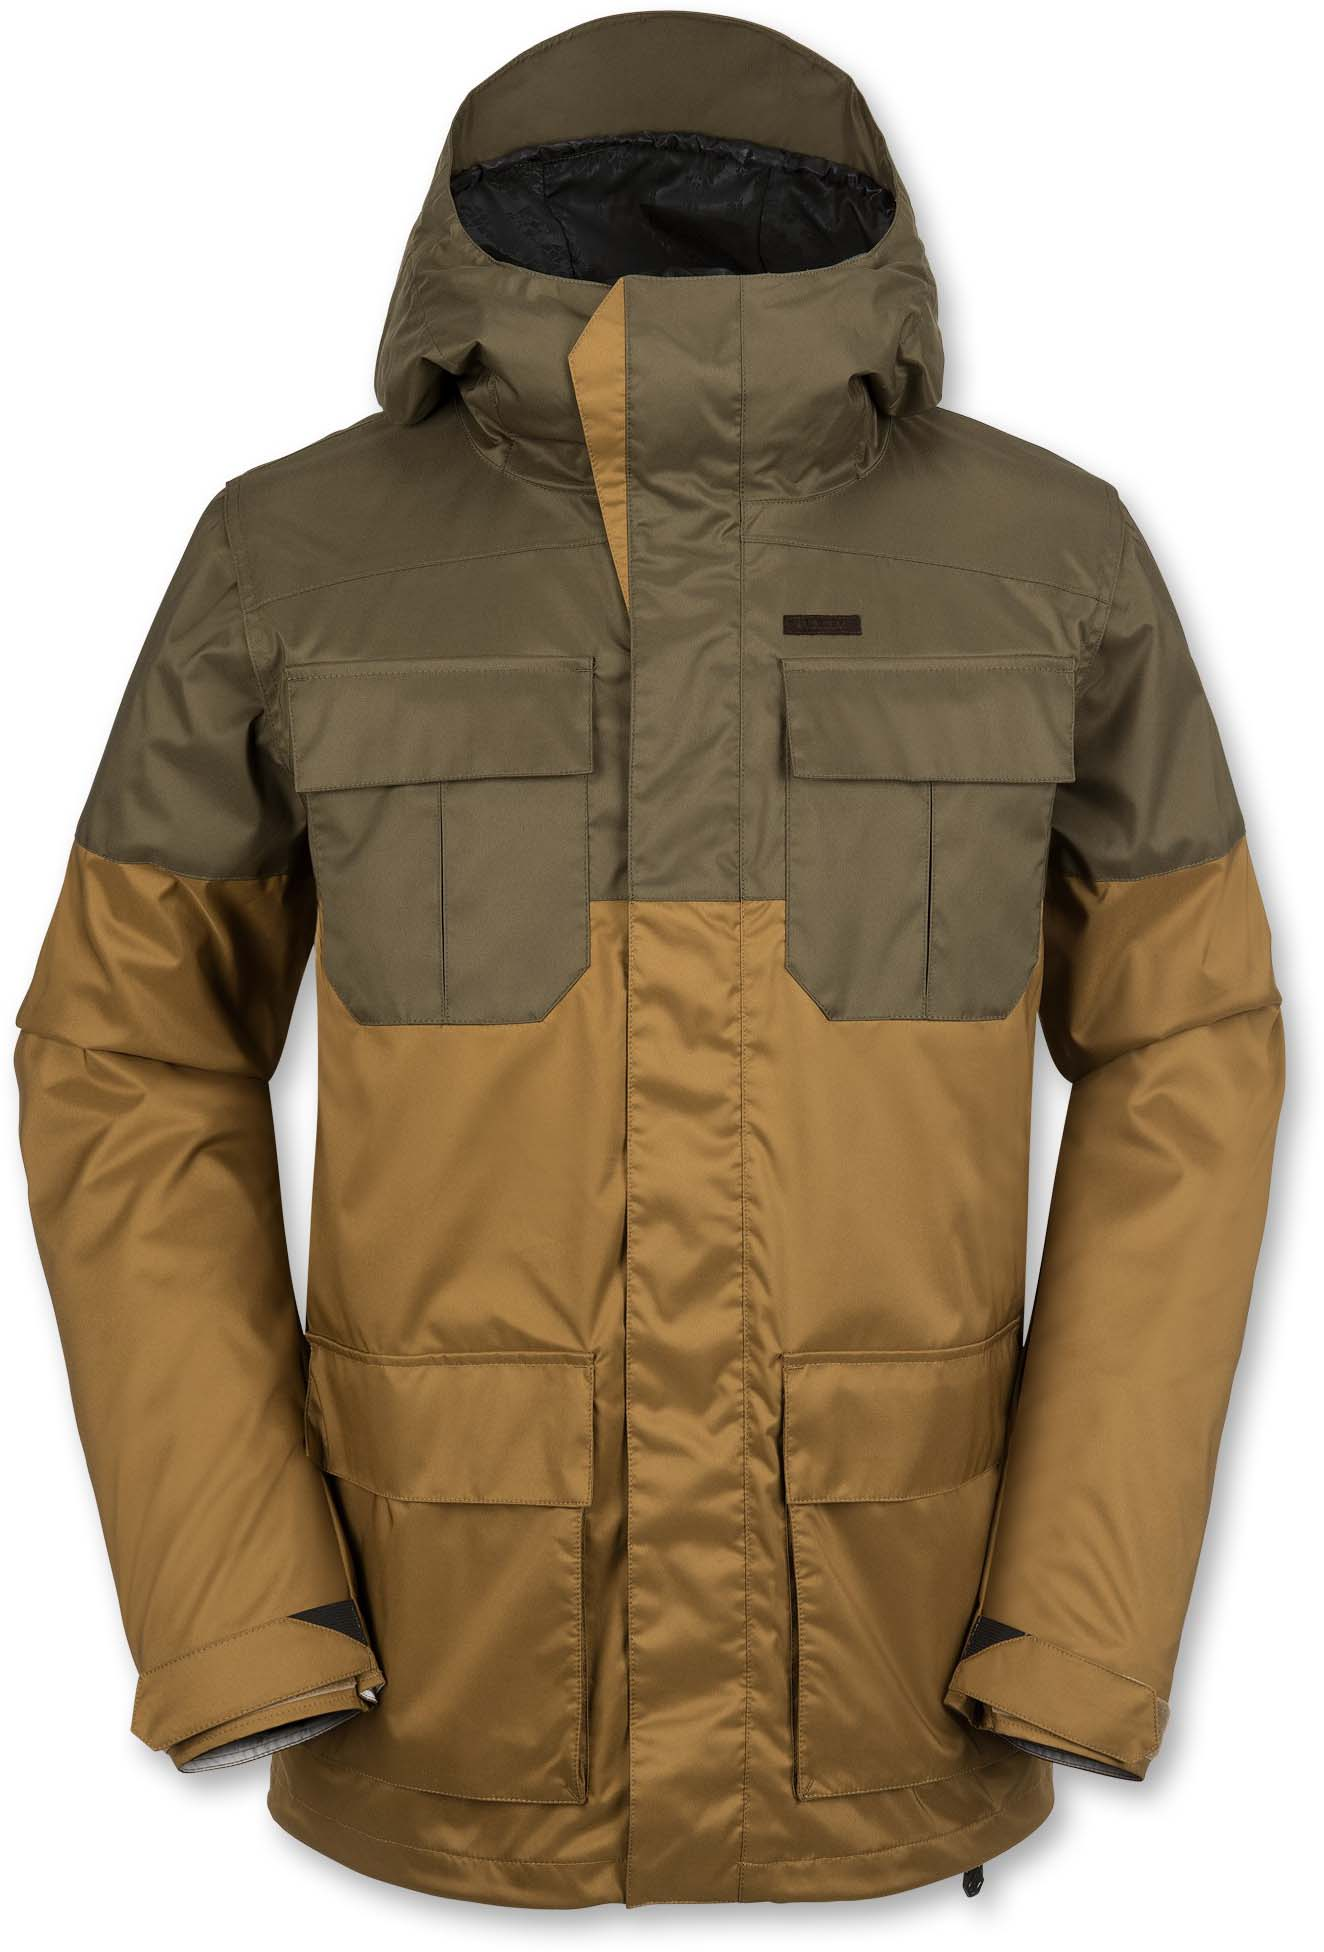 Vol Alternate Snowboard Jacket Review The Good Ride